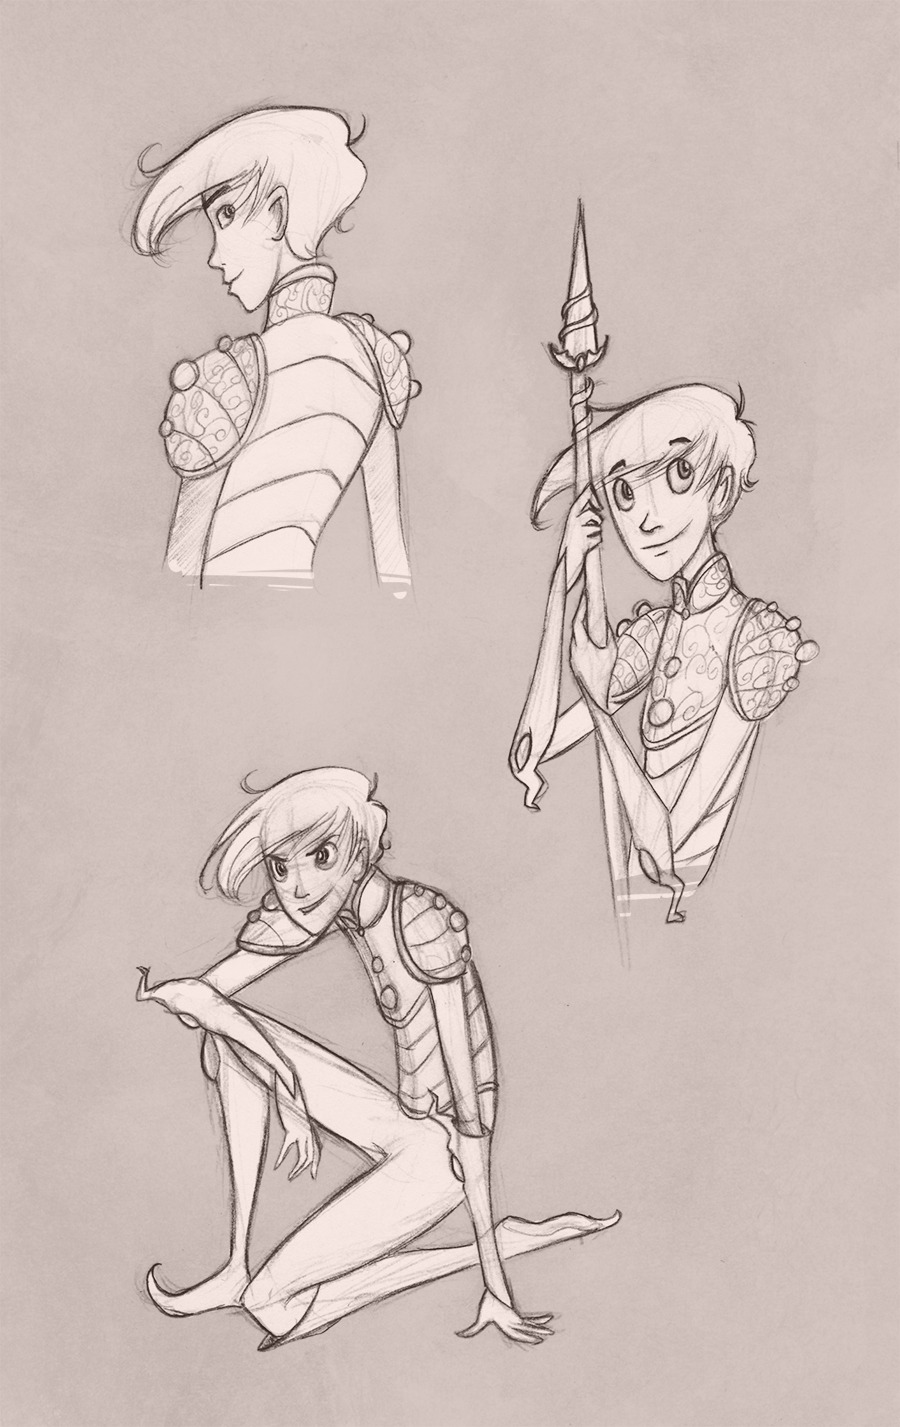 twilightsaphir:  GUARDIANS OF CHILDHOOD - NIGHLIGHT SKETCHES I felt like doodling a bit today. But then my pencil slipped and I Nightlight'd again. I am sorry.